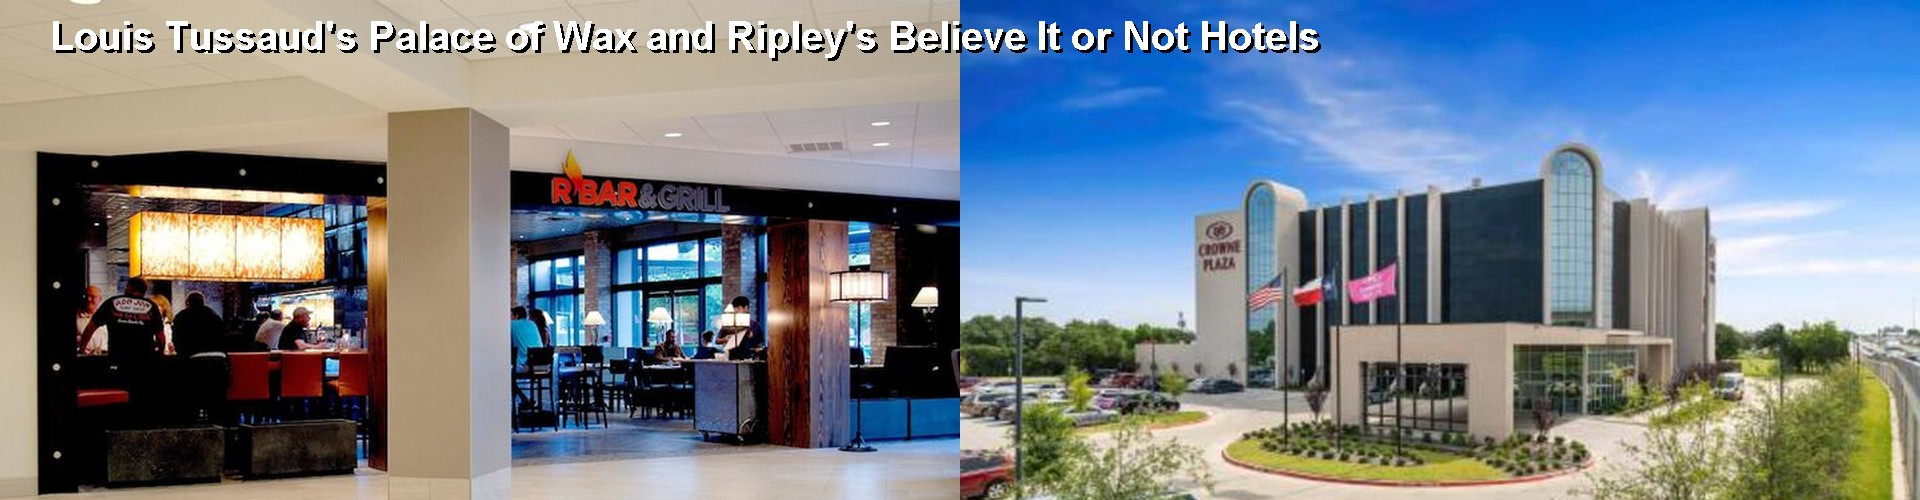 4 Best Hotels near Louis Tussaud's Palace of Wax and Ripley's Believe It or Not